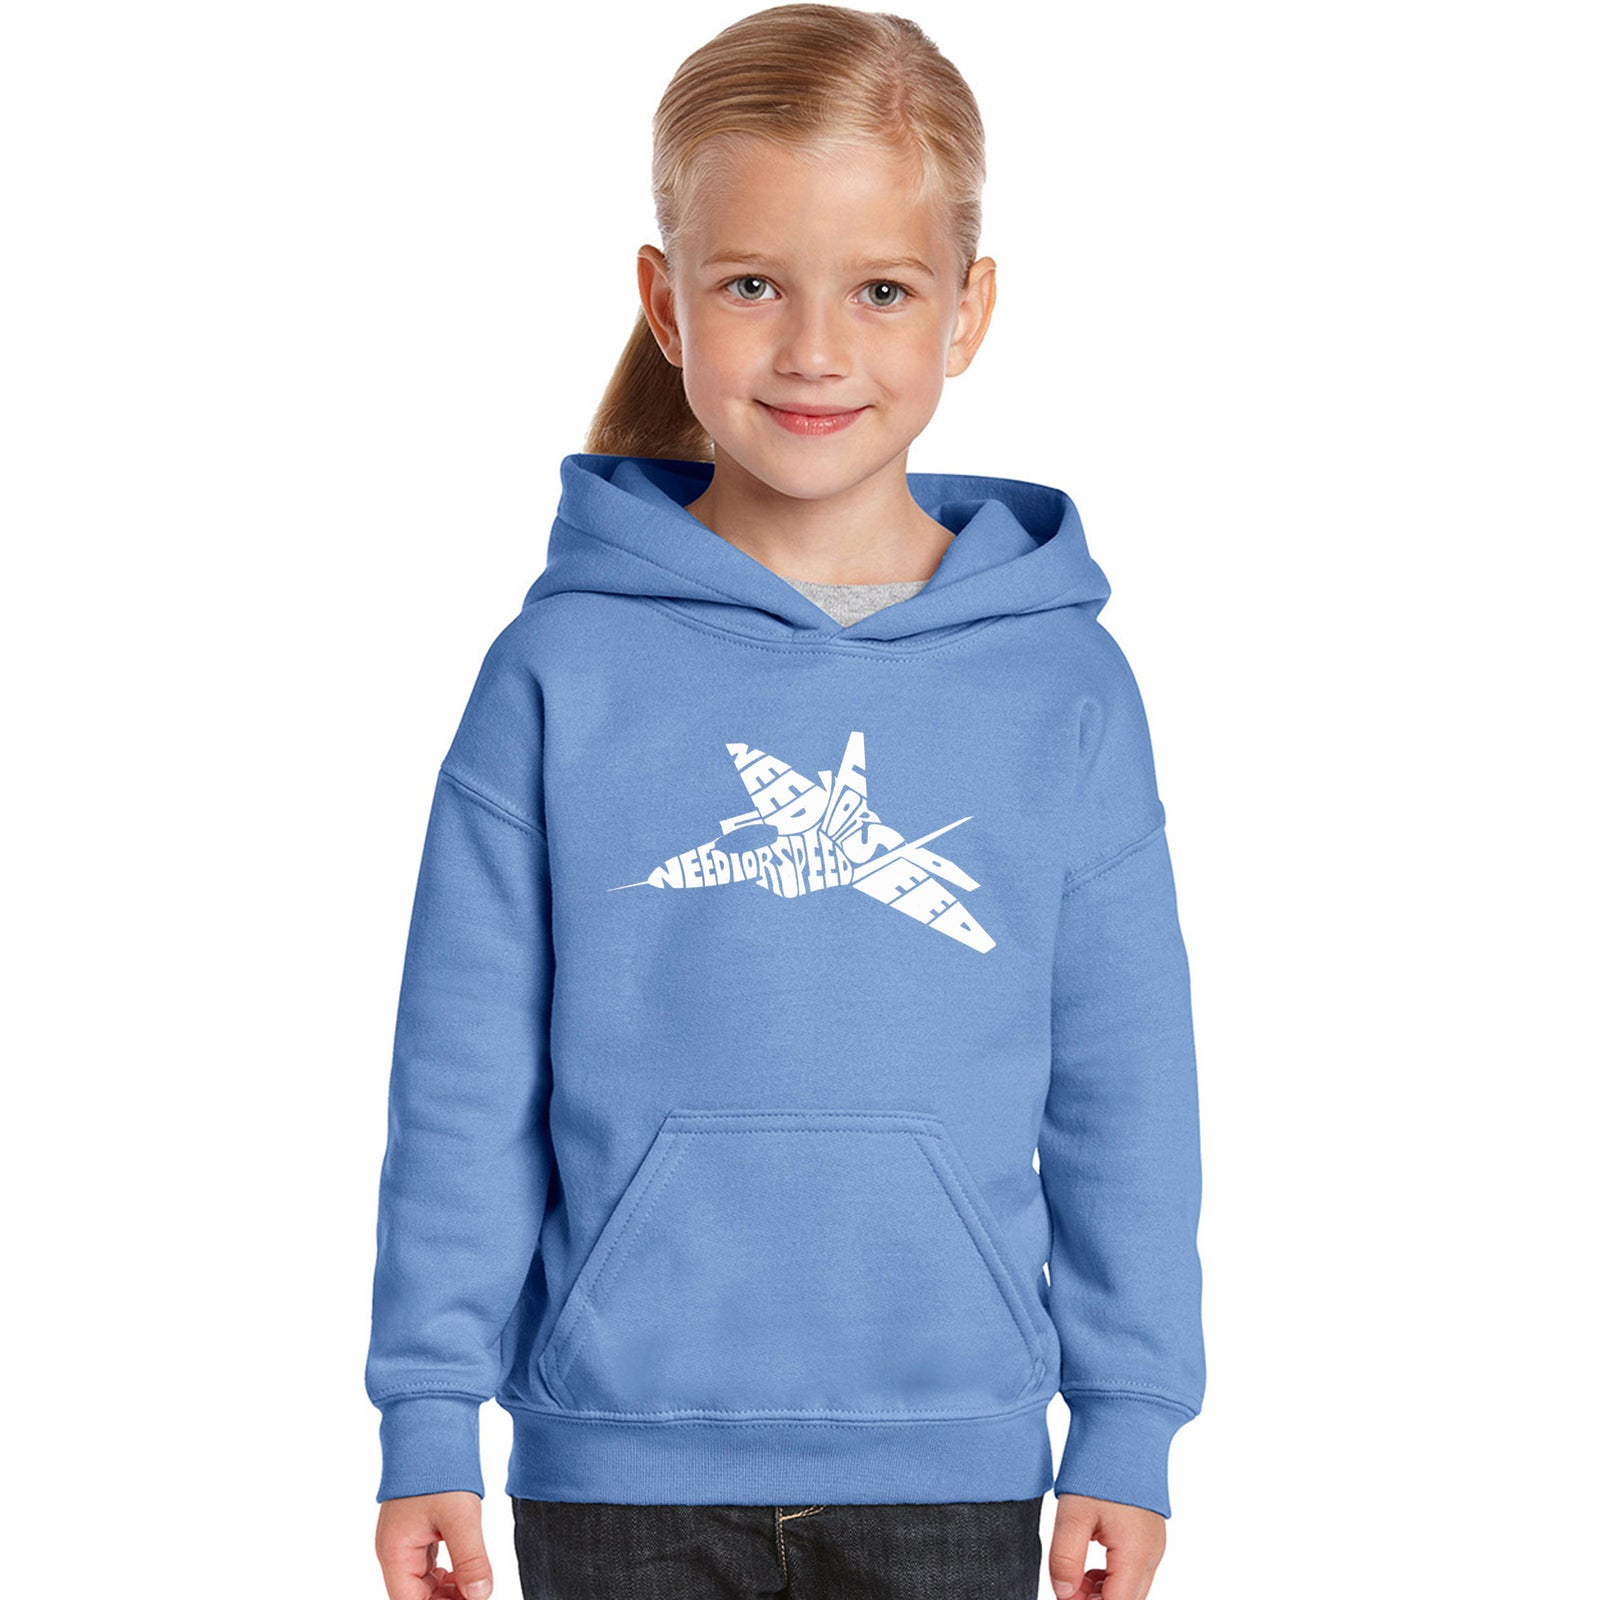 Girl's Hooded Sweatshirt - FIGHTER JET - NEED FOR SPEED